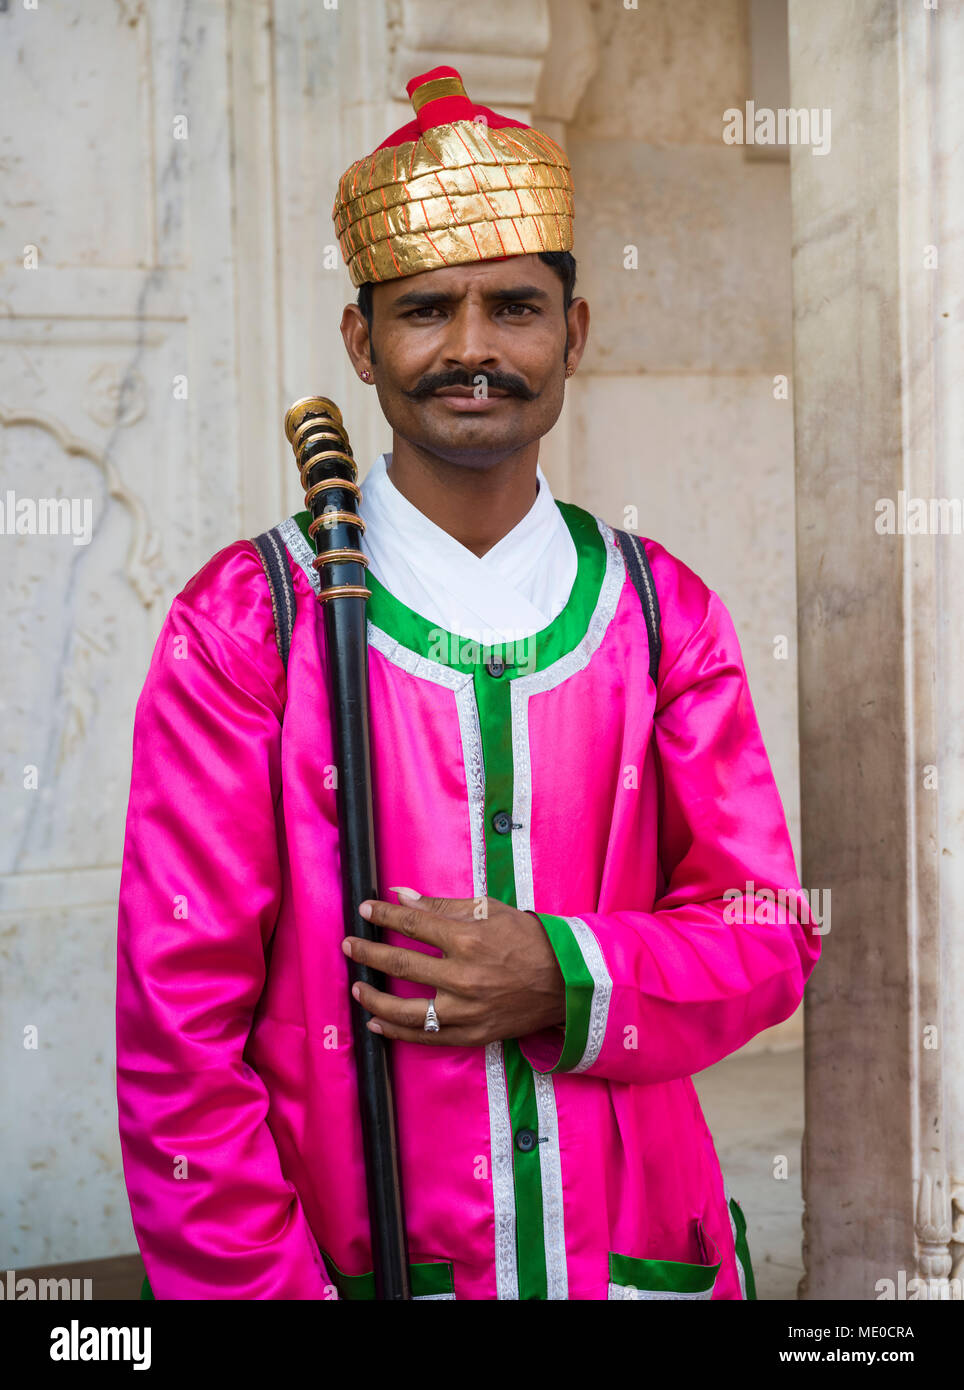 An Indian man in colourful traditional Indian clothing at City Palace; Jaipur, Rajasthan, India - Stock Image